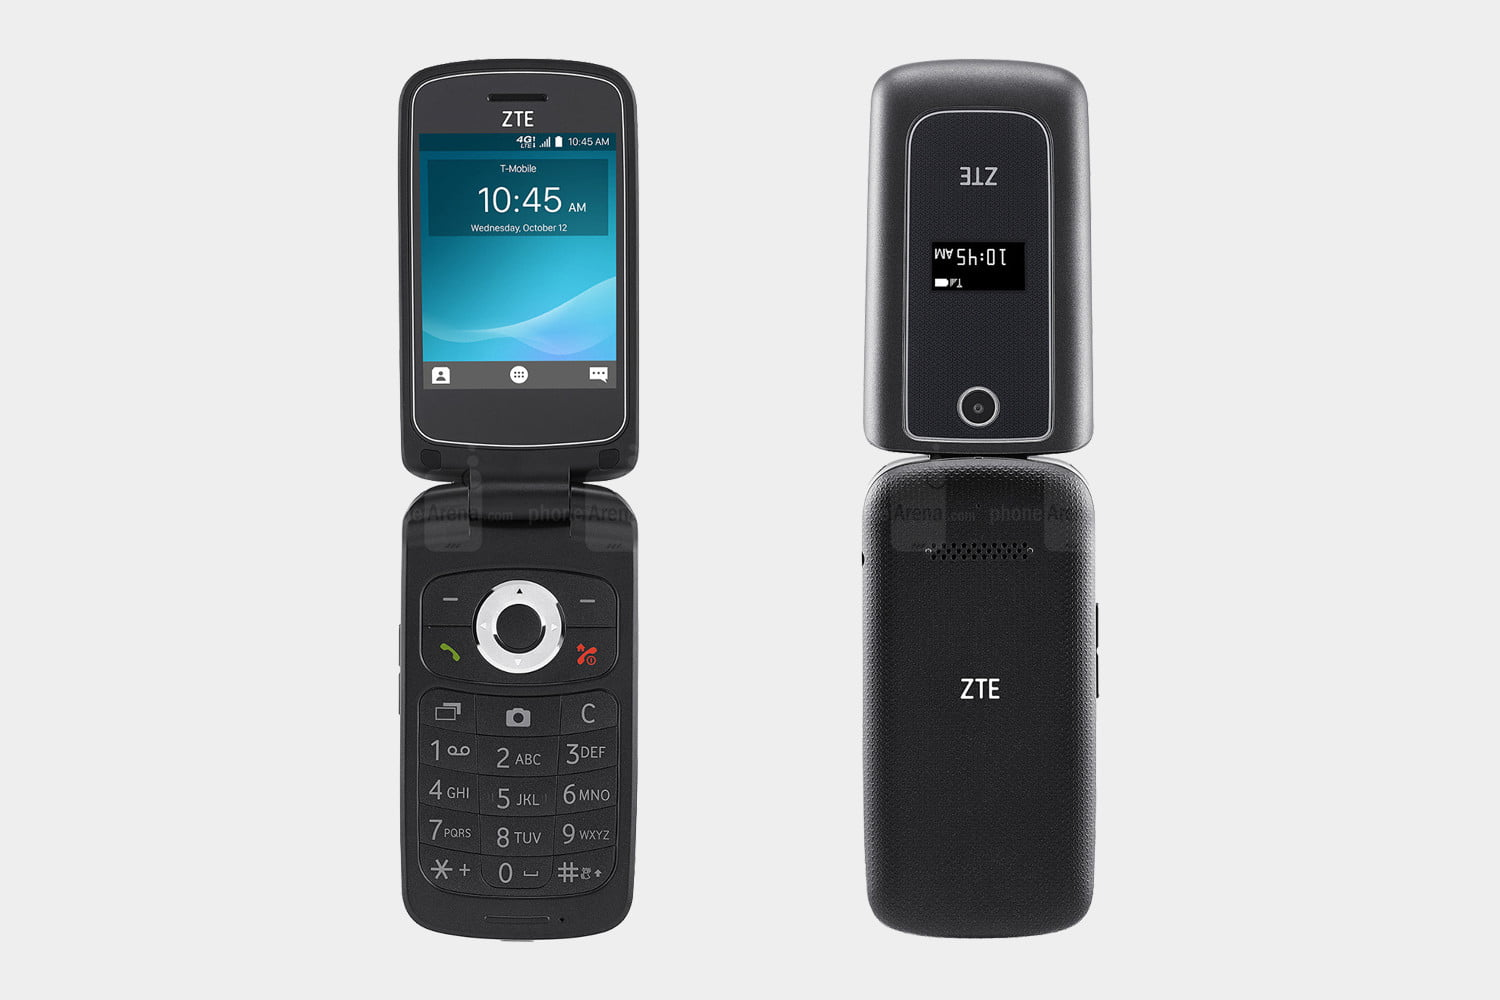 What should be a mobile phone for the elderly